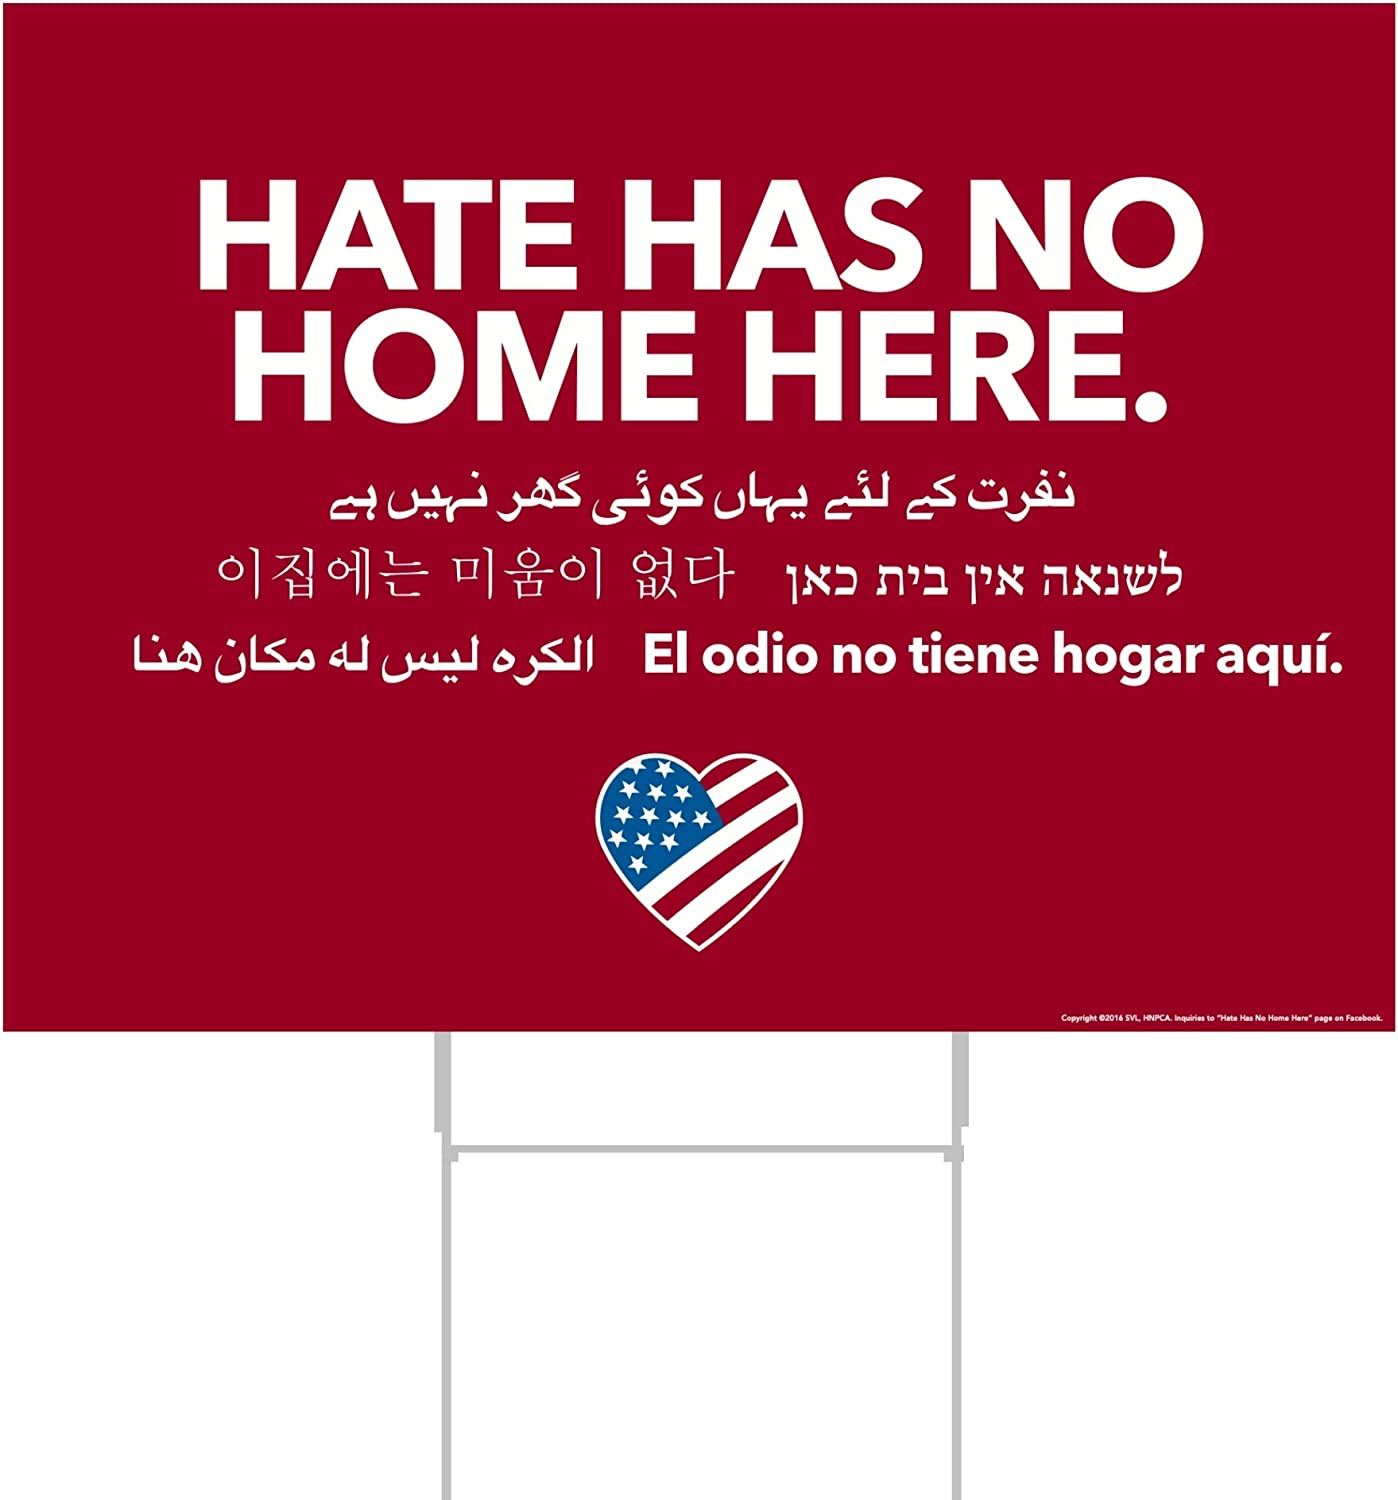 "Little FootPrint Full Size - Red Hate Has No Home Here Yard Sign, 18""X24"" Double-Sided, Waterproof, Made in The USA, Metal Stake Included"